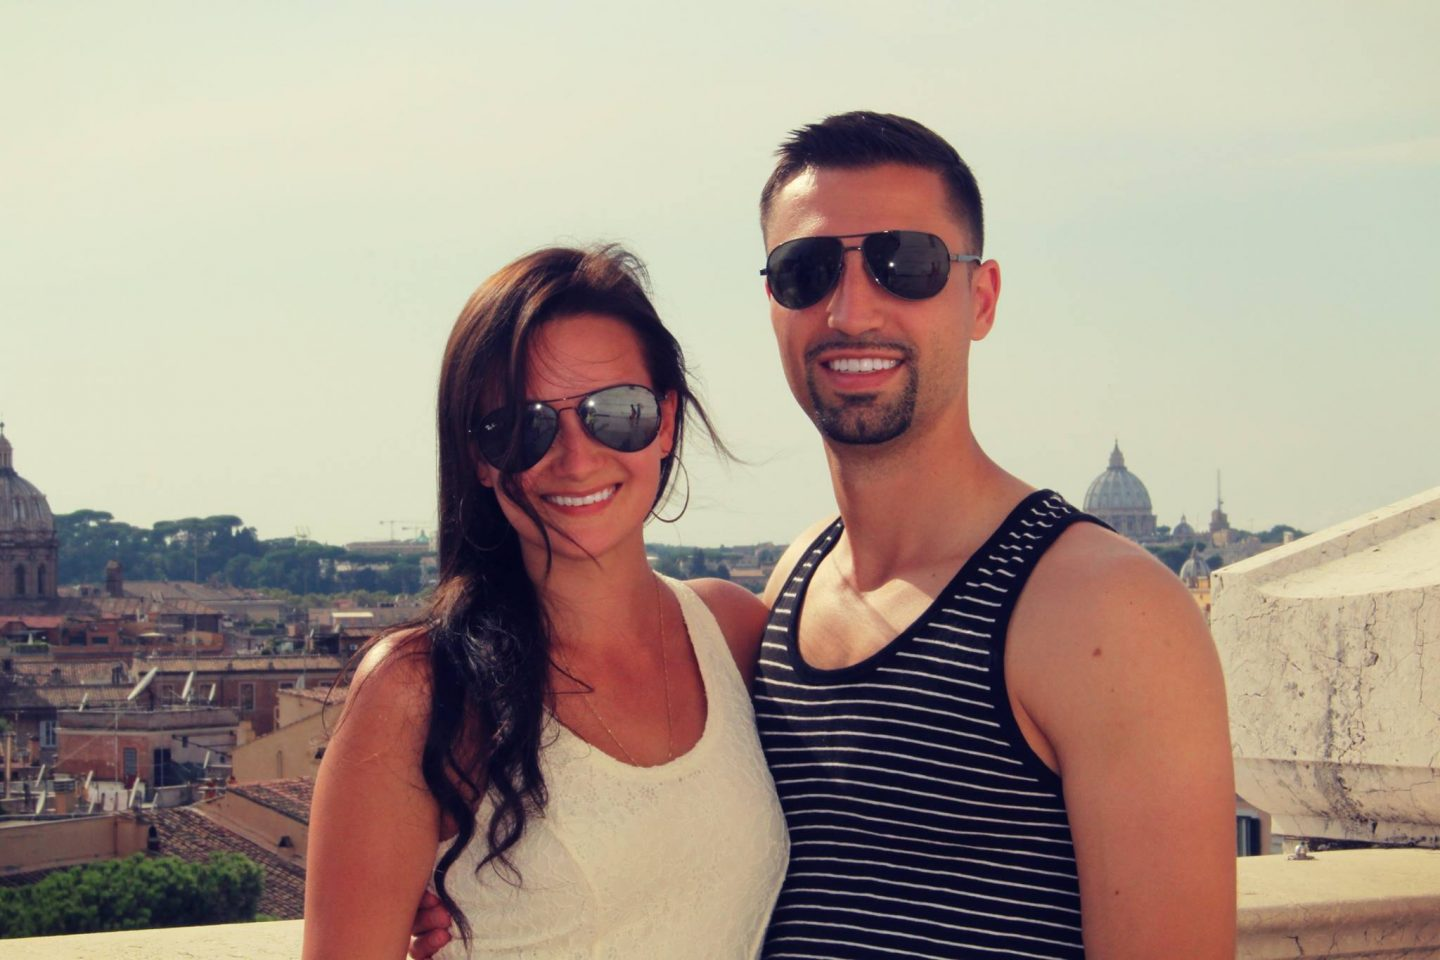 Rooftops with best view of Rome Italy - by @danandnatty